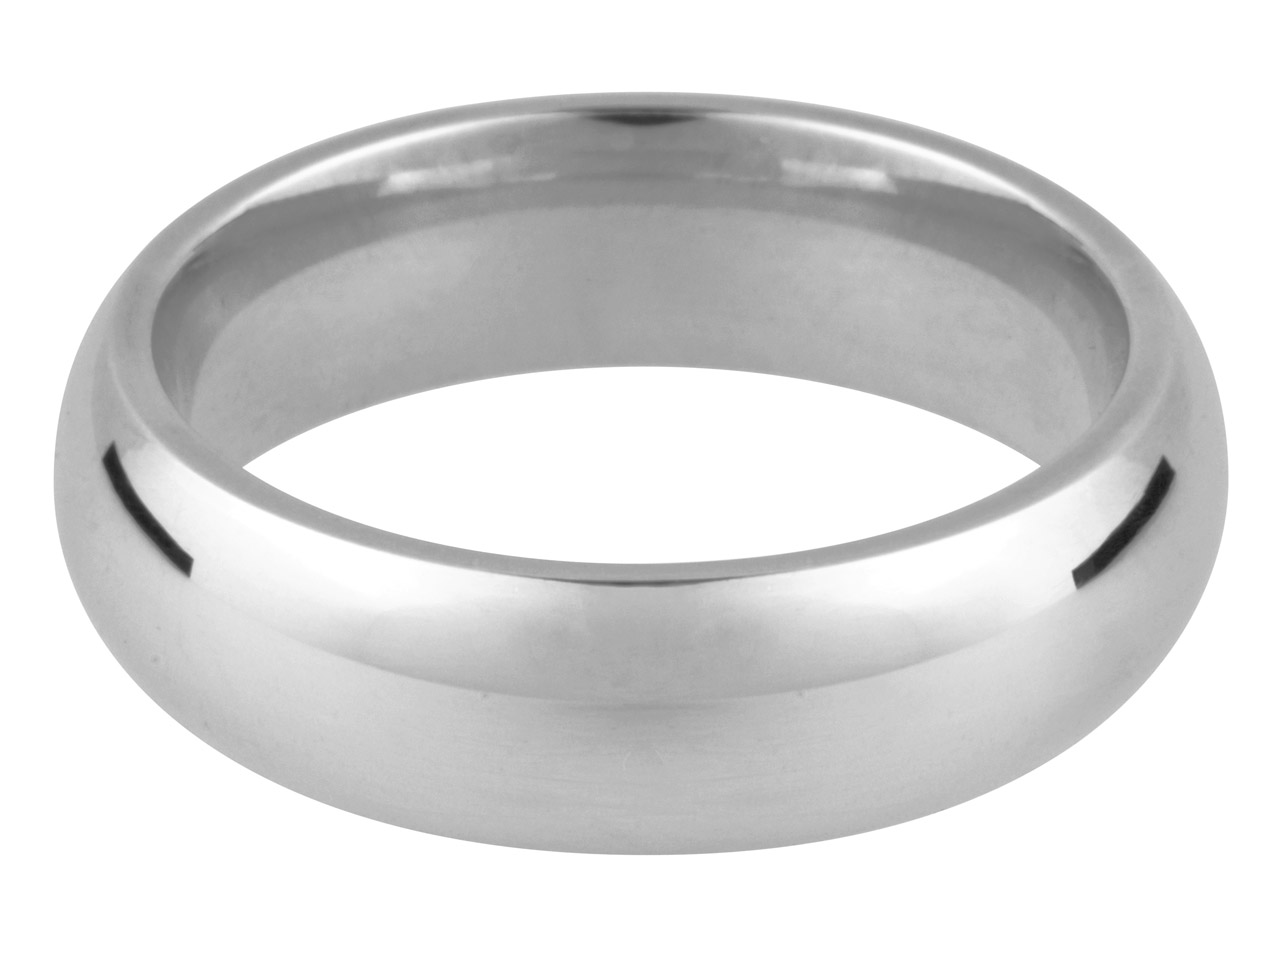 Palladium Court Wedding Ring 3.0mm L 3.0gms Medium Weight Hallmarked  Wall Thickness 1.64mm